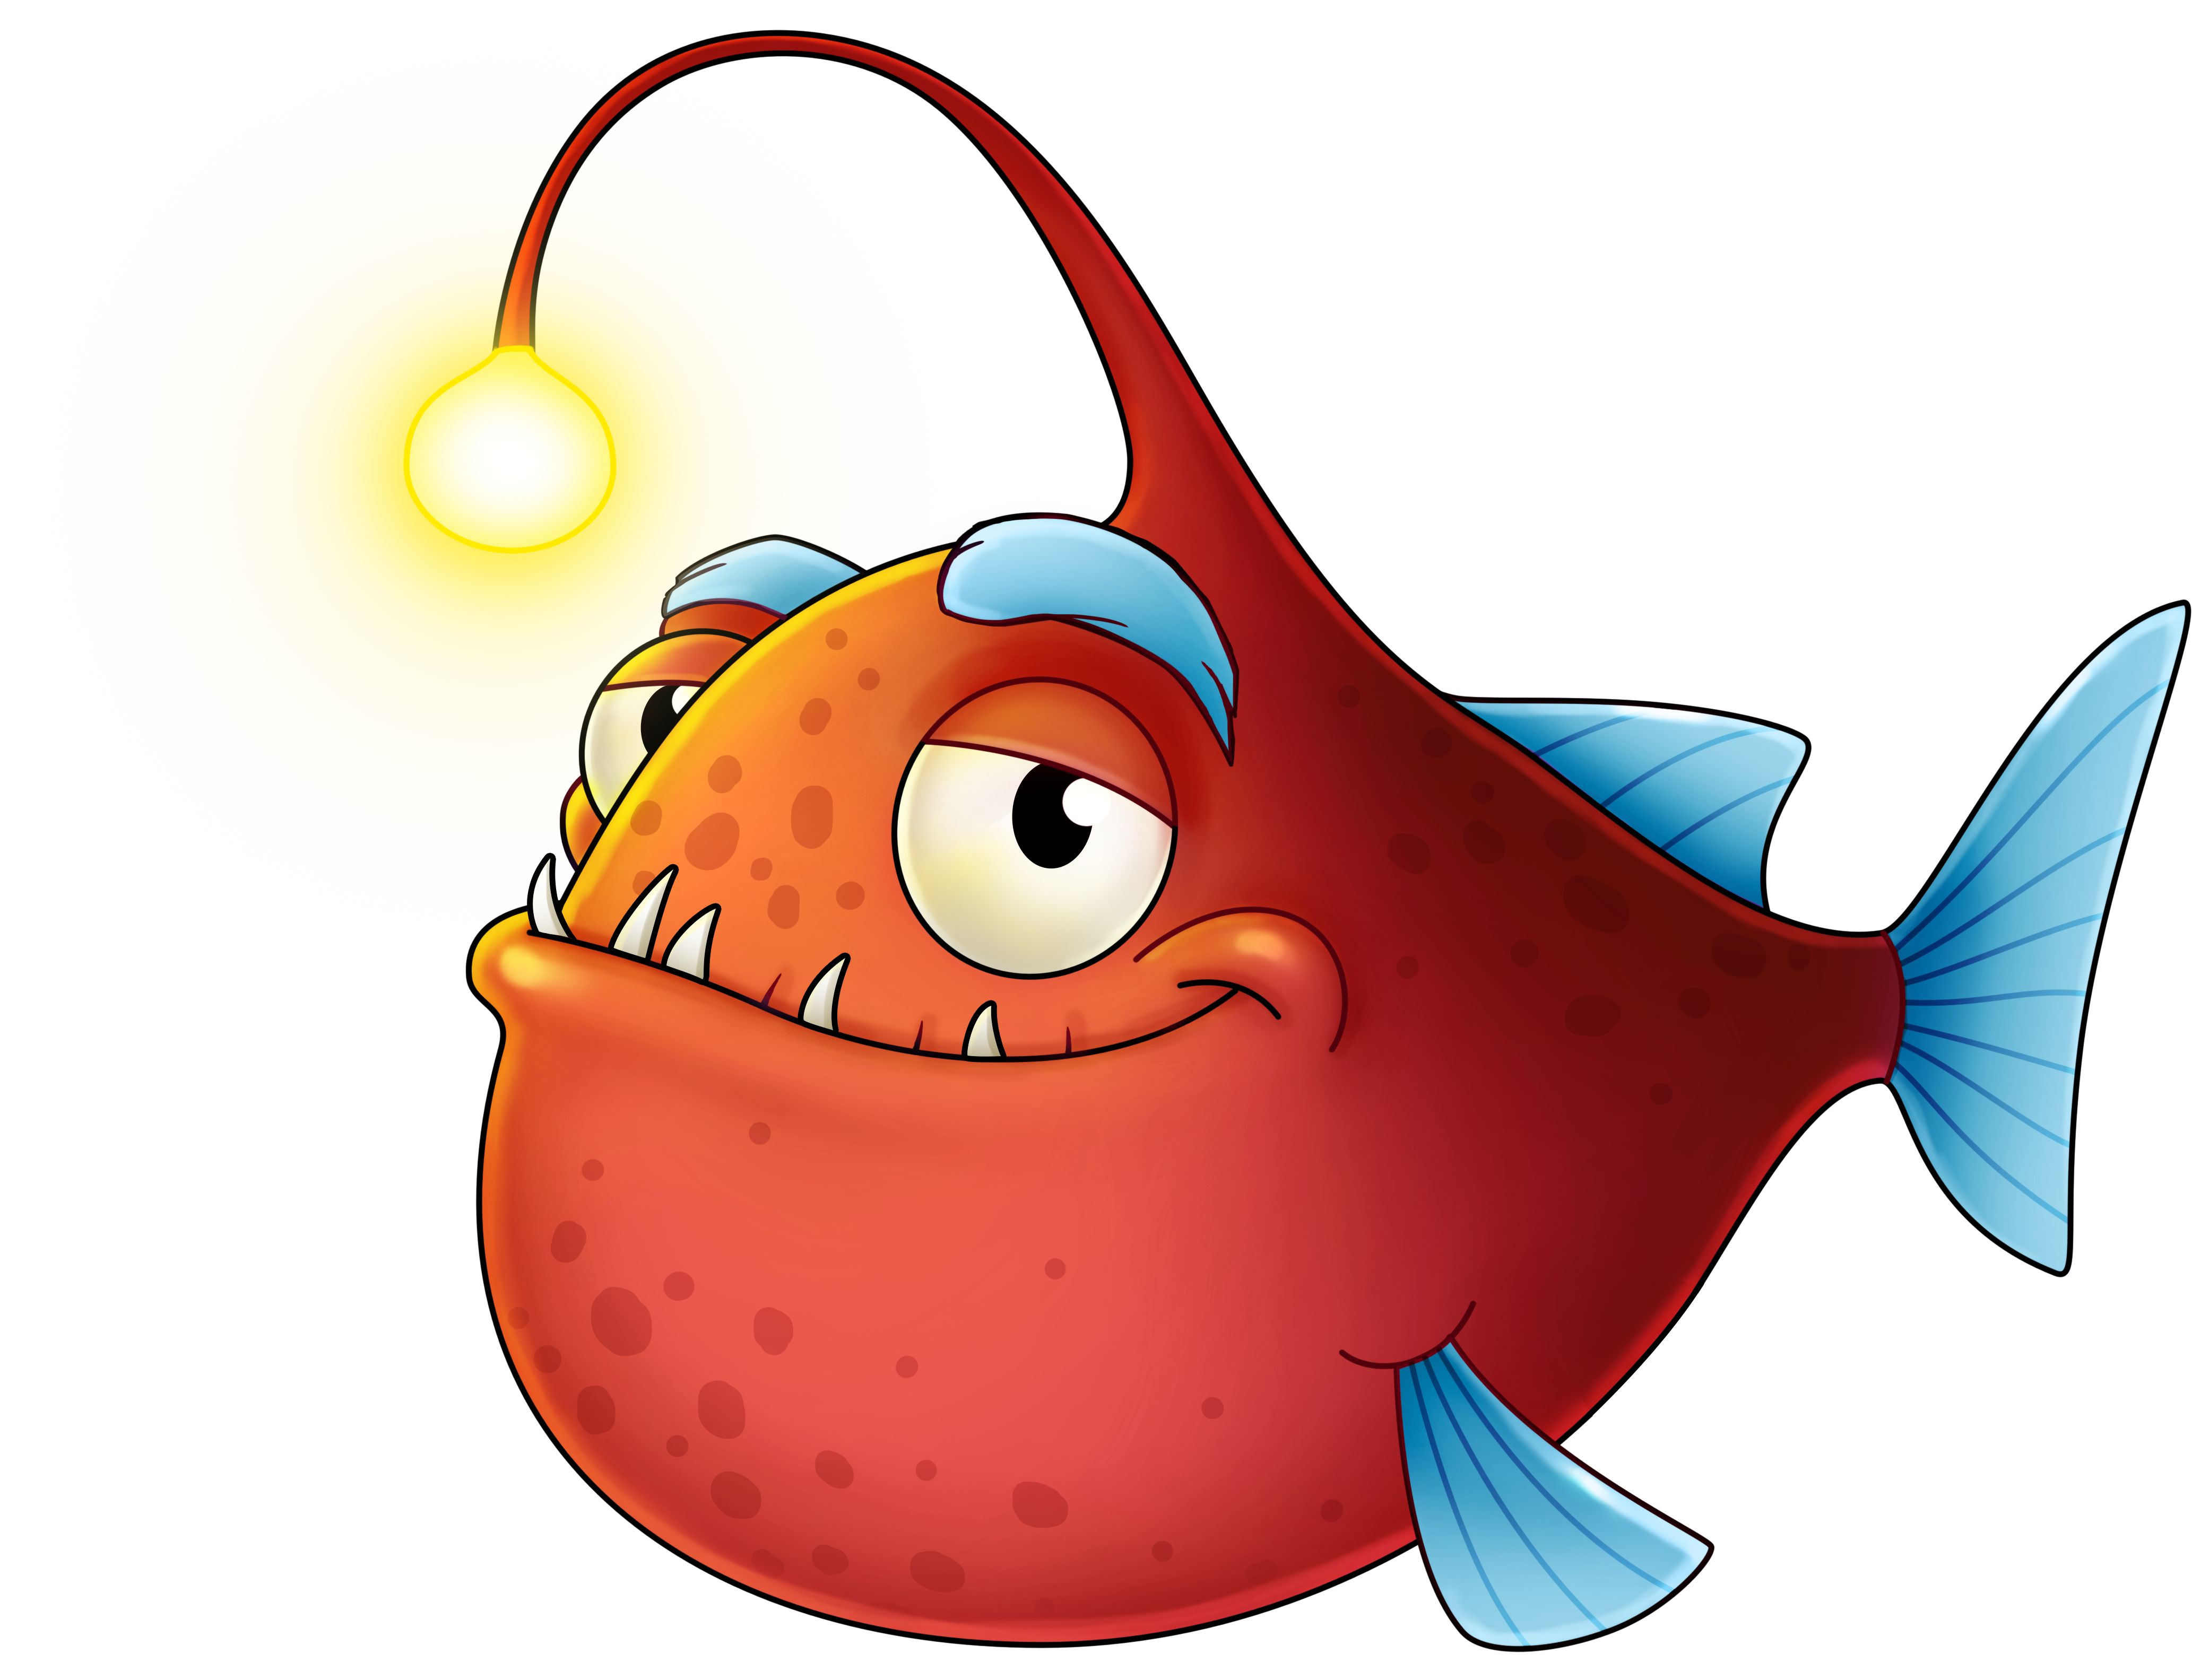 Angler fish clipart jpg free library Playtech - Motivation system jpg free library